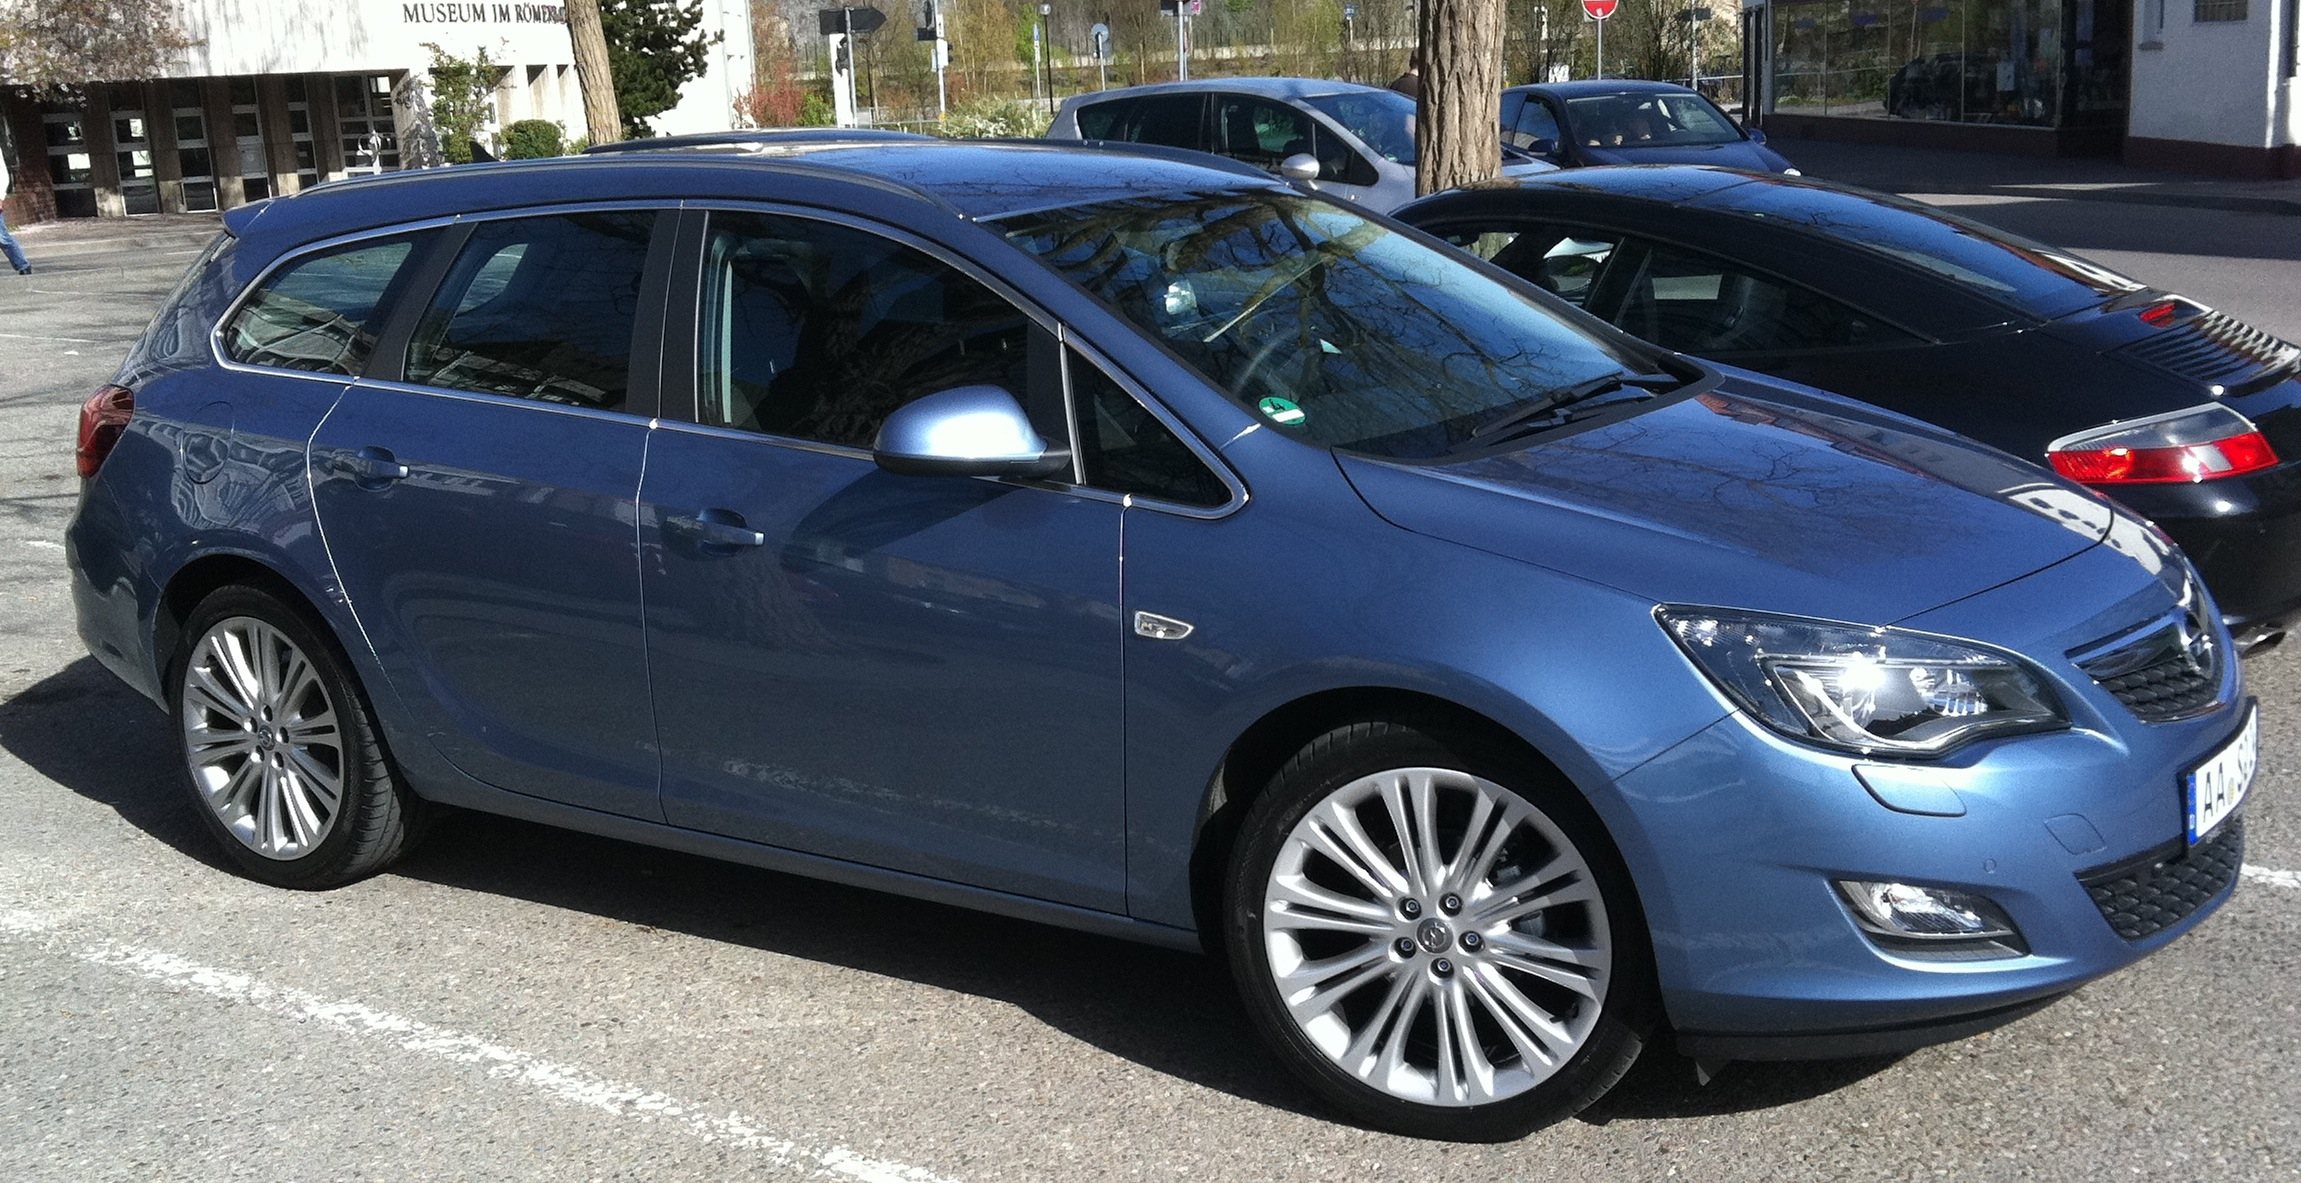 2010 opel astra j sports tourer pictures information and specs auto. Black Bedroom Furniture Sets. Home Design Ideas